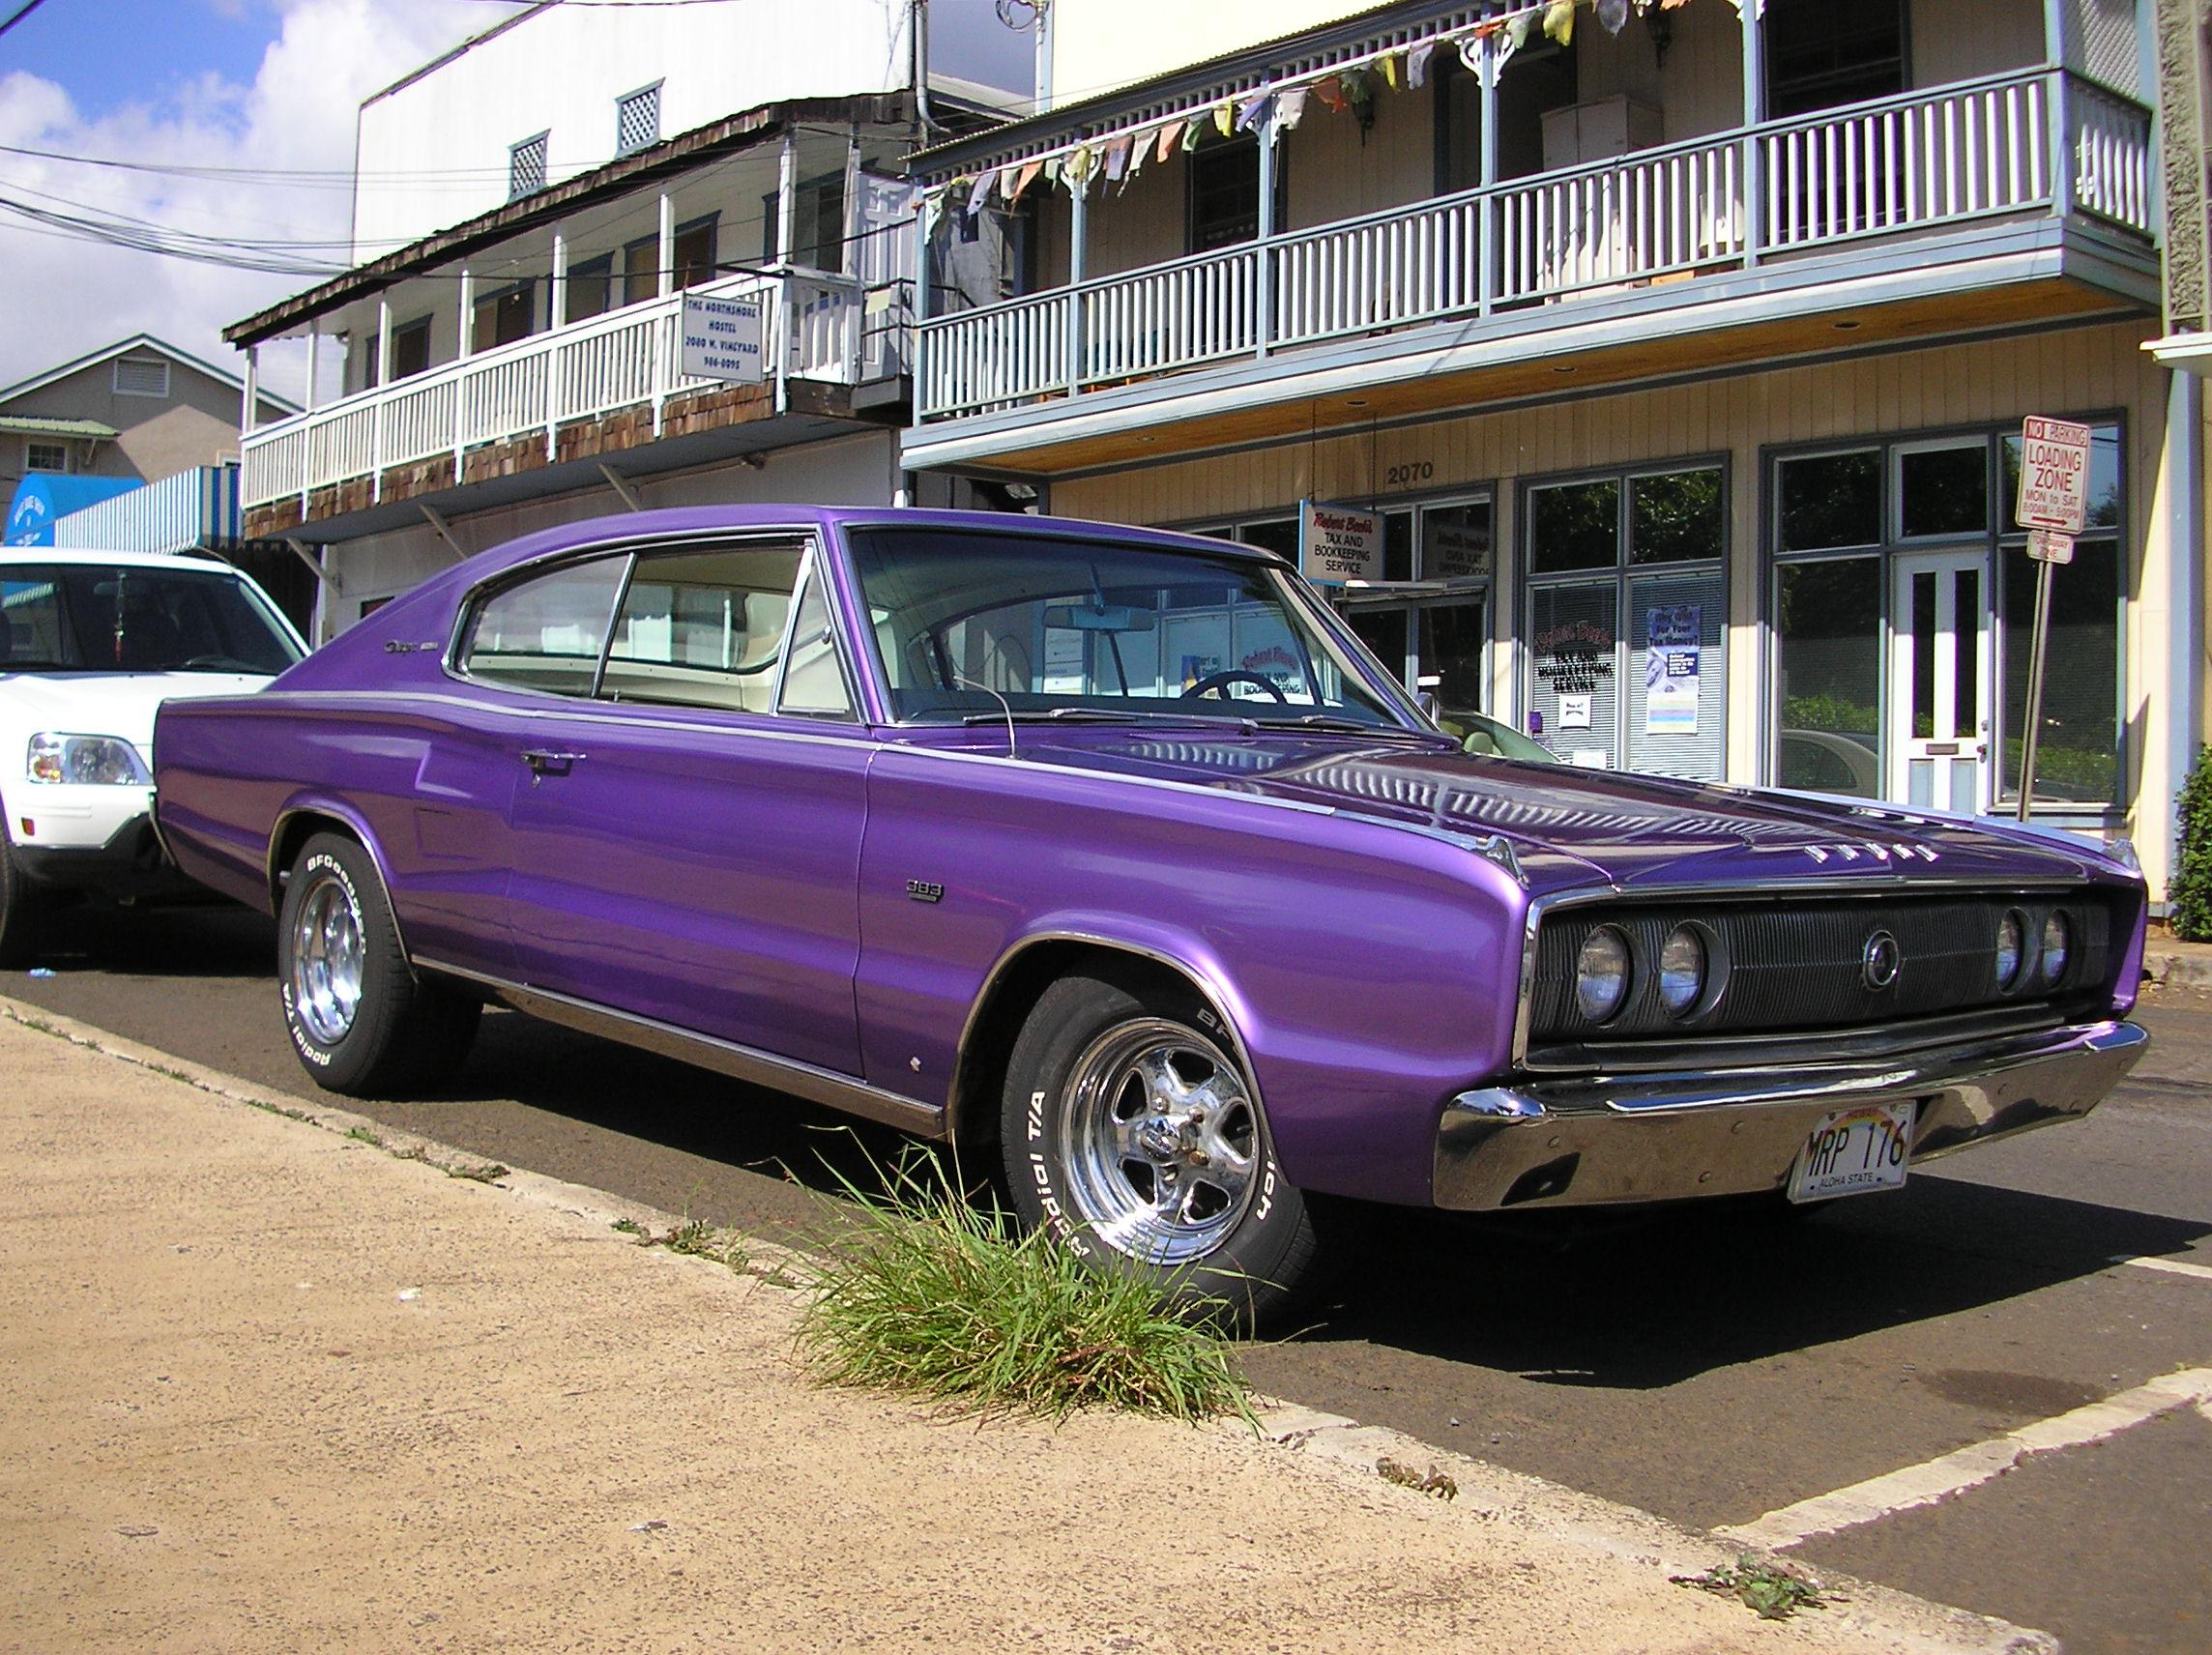 purplehaze67's 1967 Dodge Charger